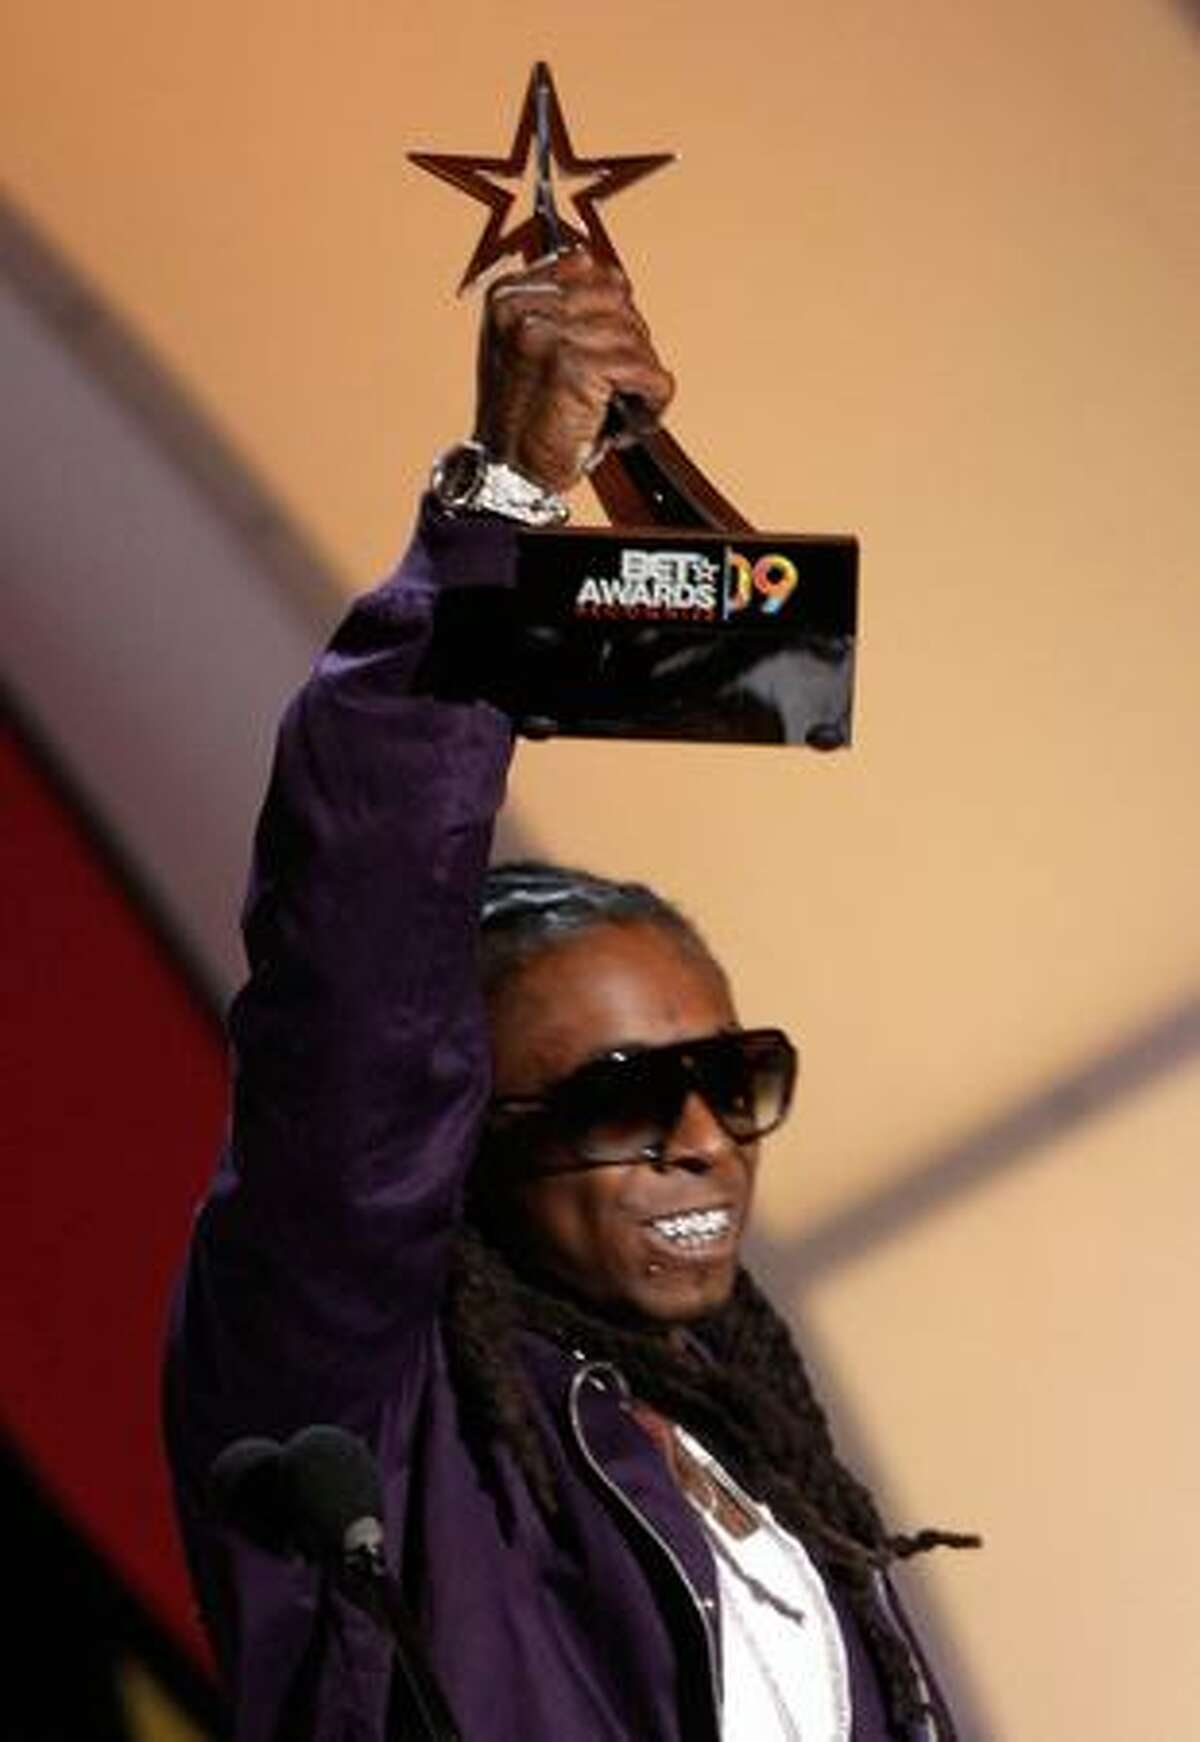 Rapper Lil' Wayne accepts the Best Male Hip-Hop Artist award on stage during the 2009 BET Awards held at the Shrine Auditorium on Sunday in Los Angeles, California.